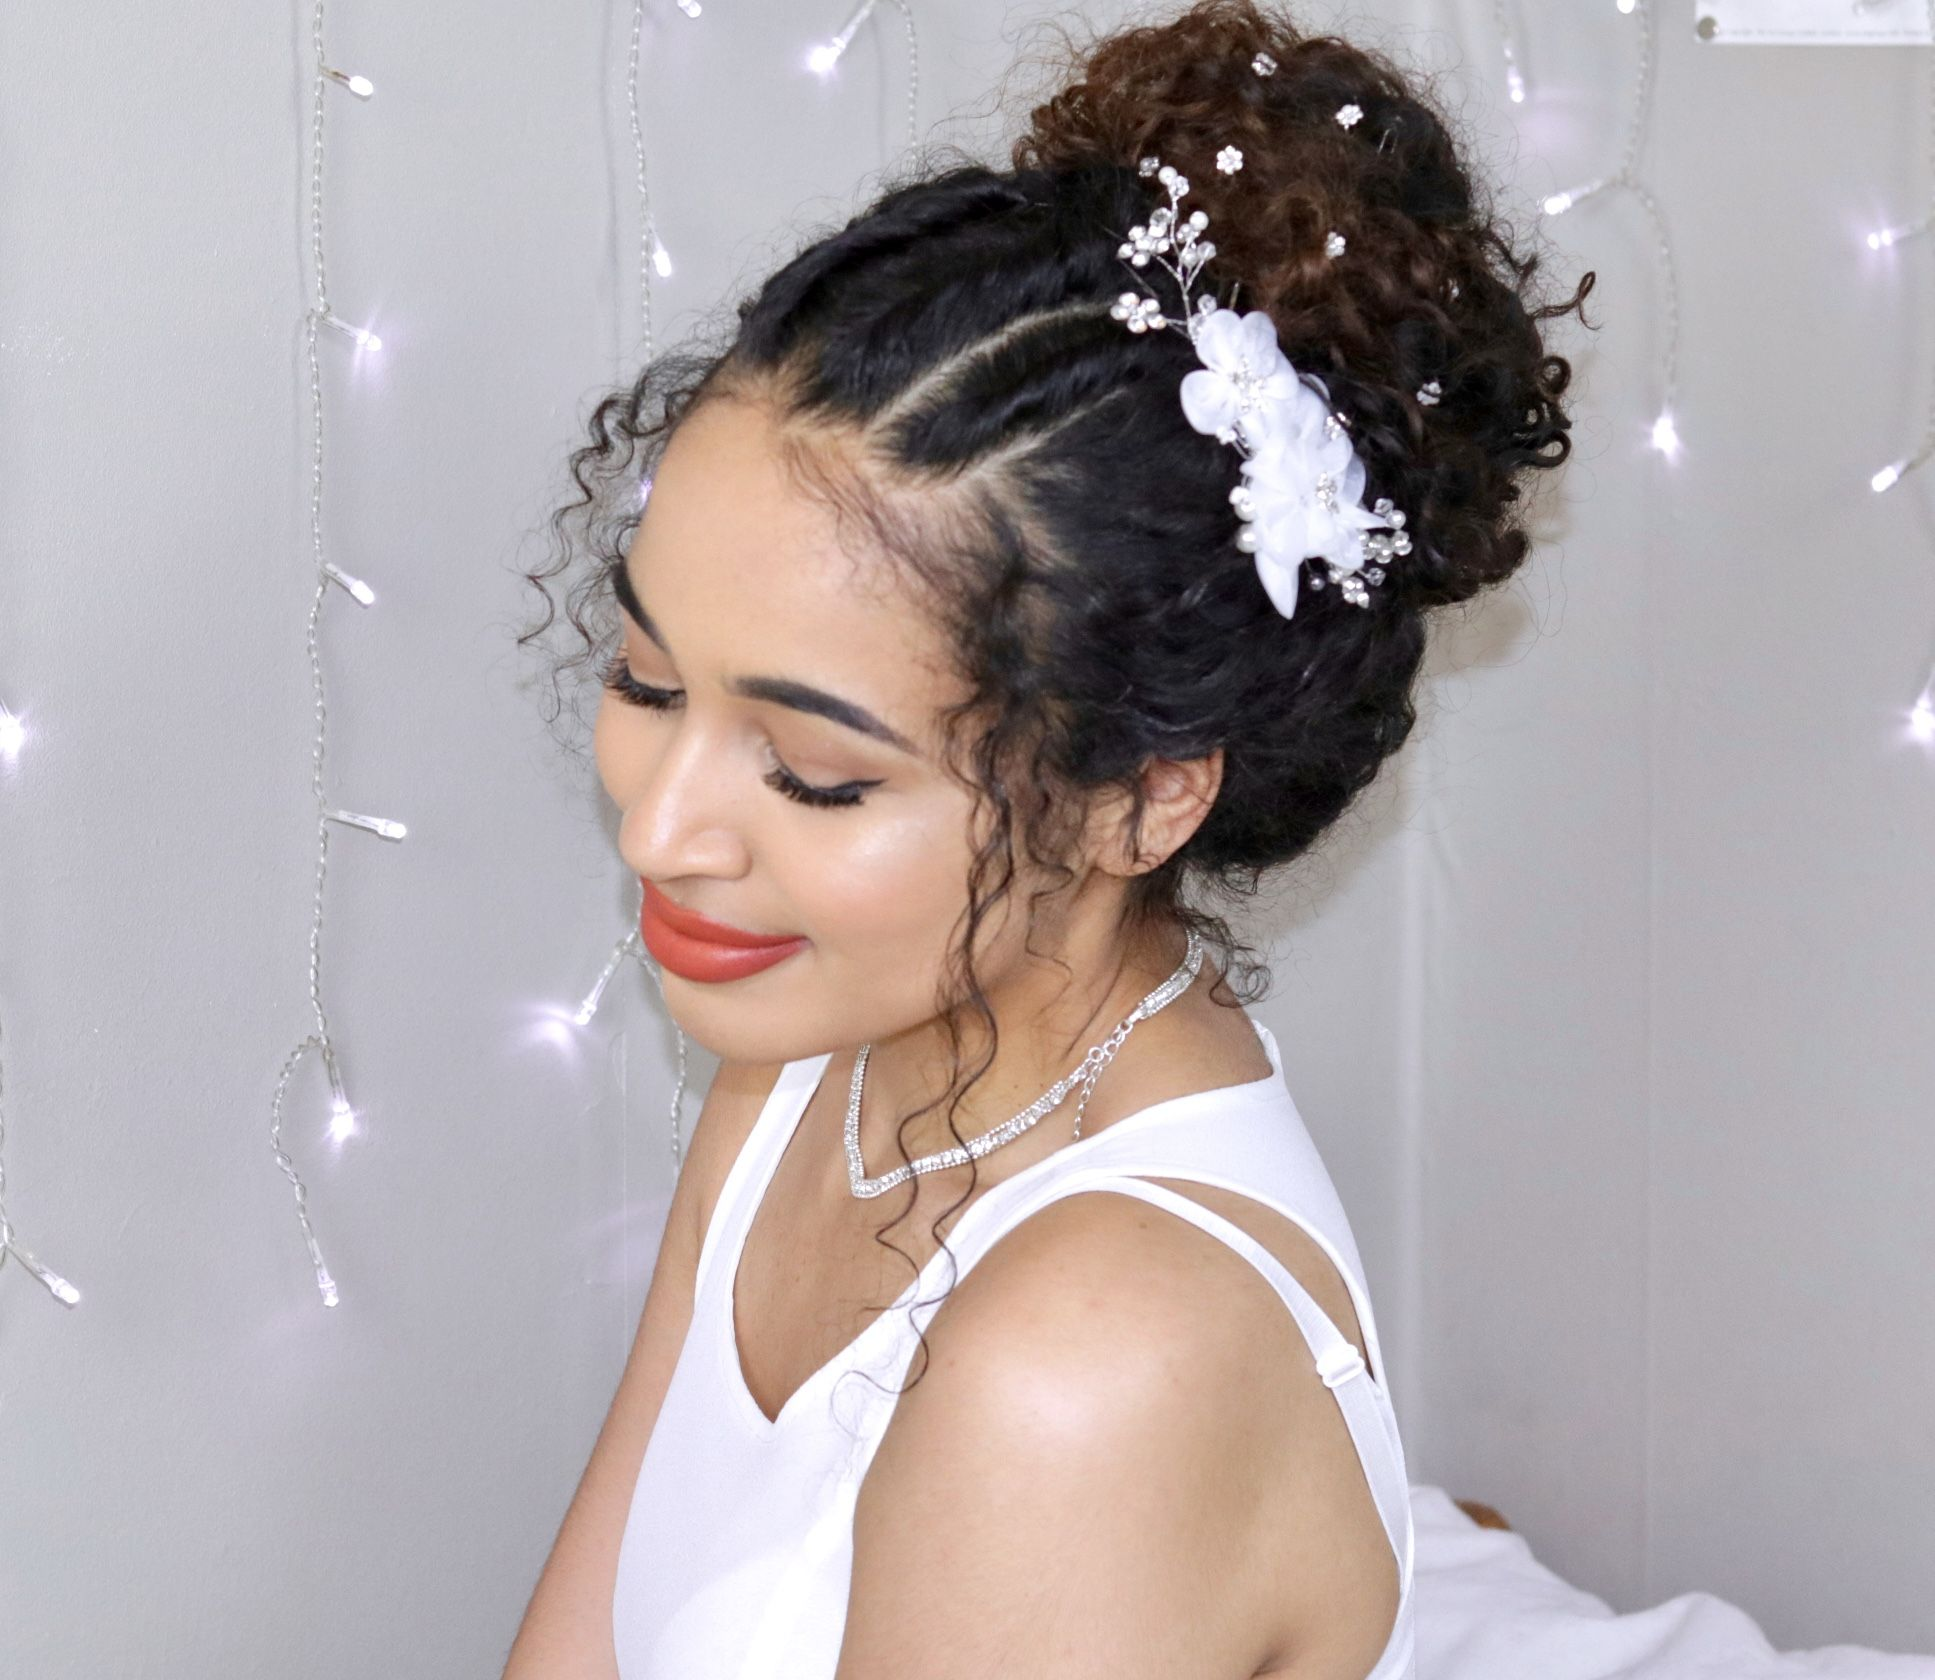 Formal Curly Hairstyles For Prom Naturally Curly Hair By Lana Summer Curly Hair Styles Hair Styles Formal Curly Hairstyles